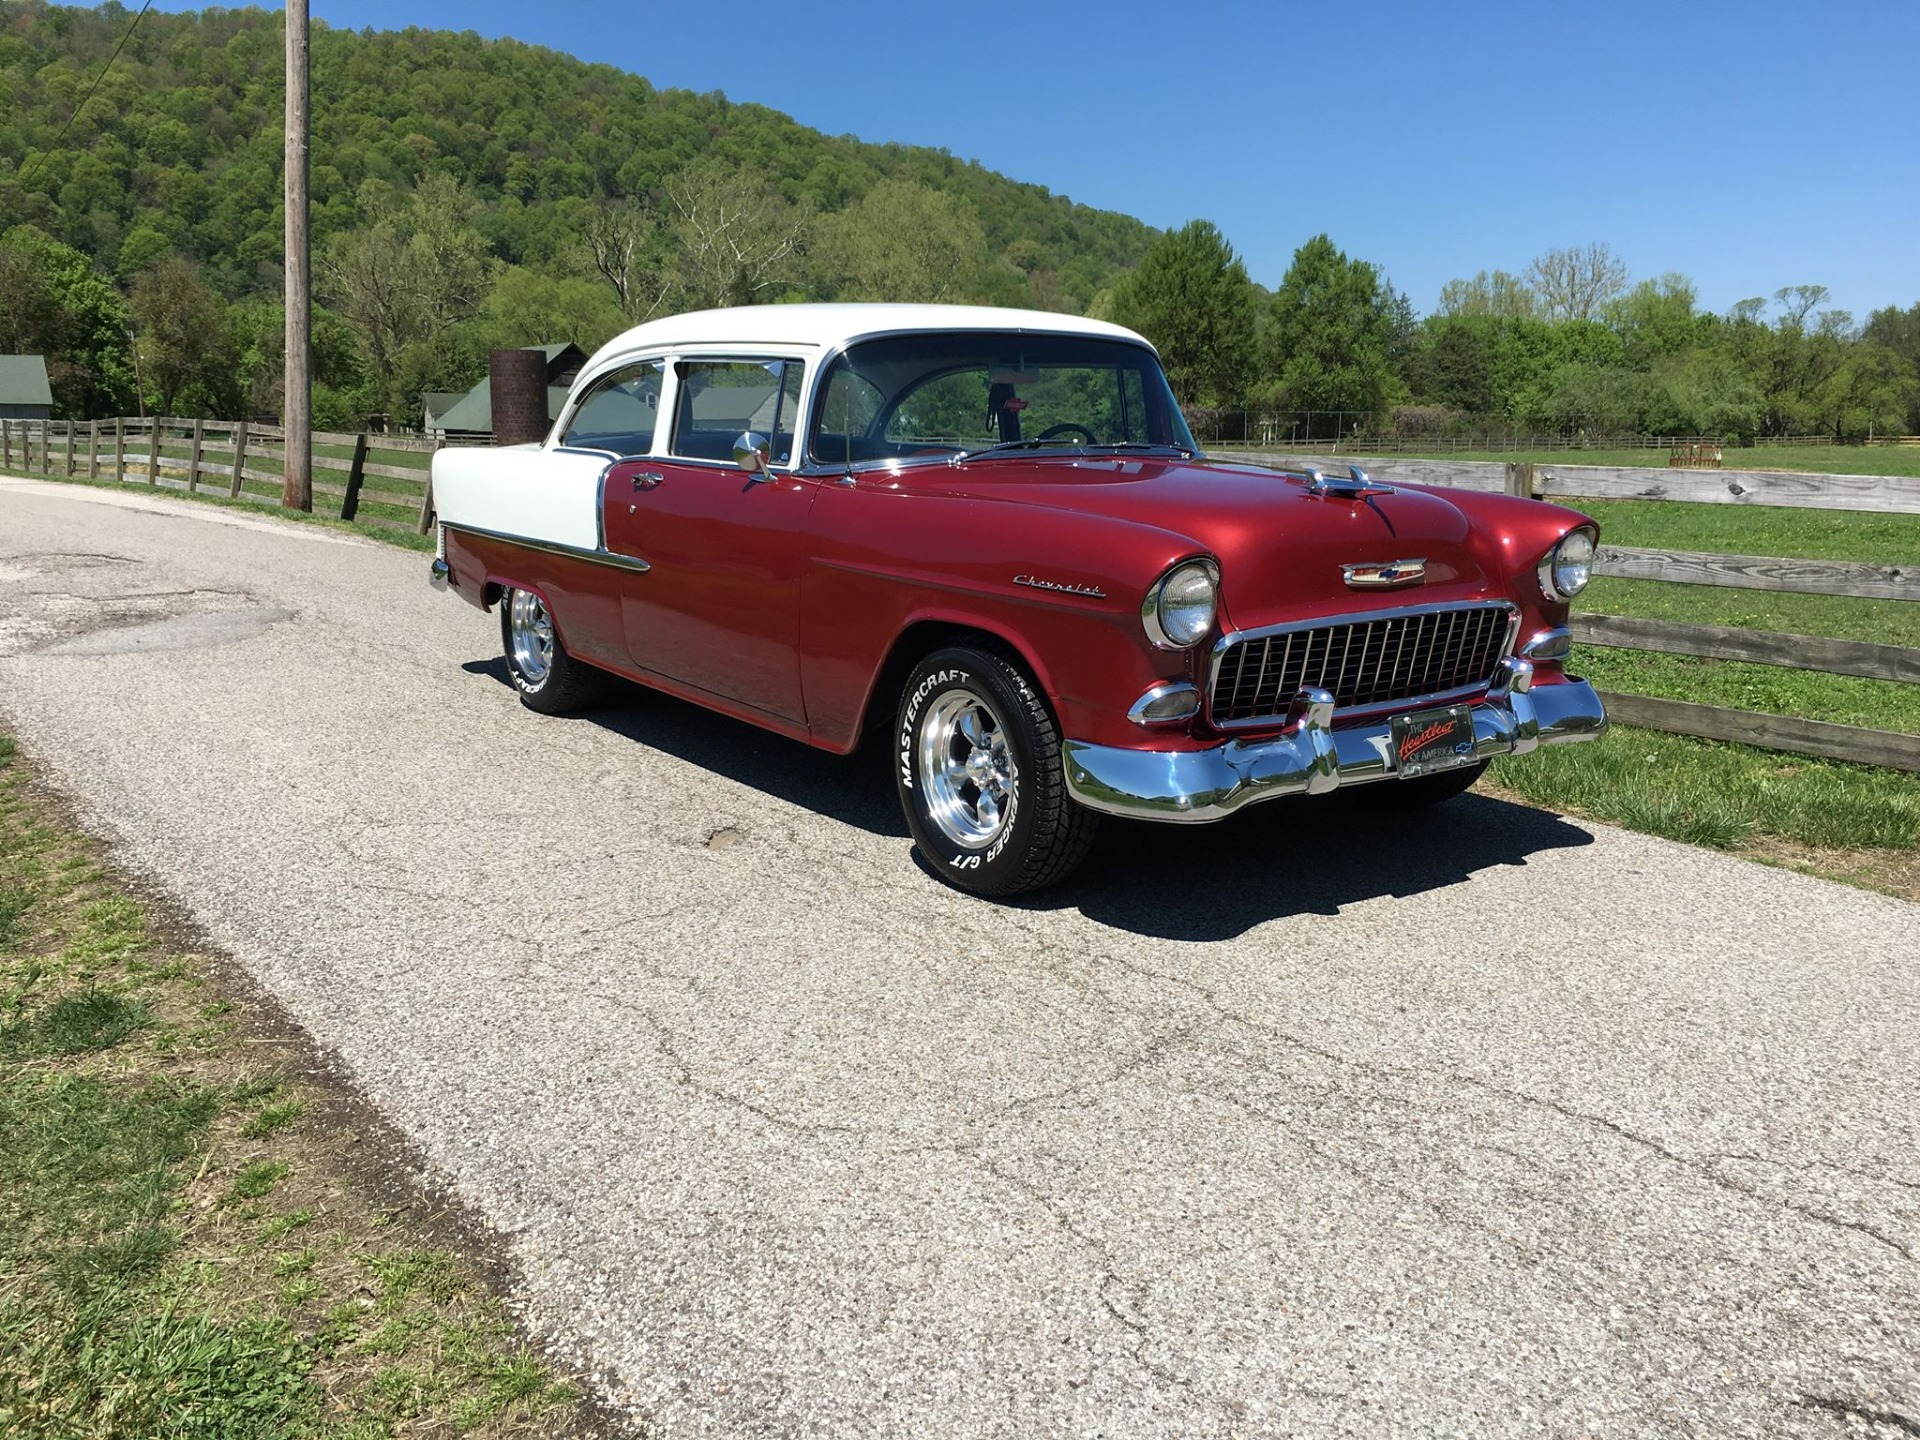 Used 1955 Chevrolet Bel Air/150/210 -RESTORED-COLD AC-SOLID TRI FIVE-SEE VIDEO | Mundelein, IL